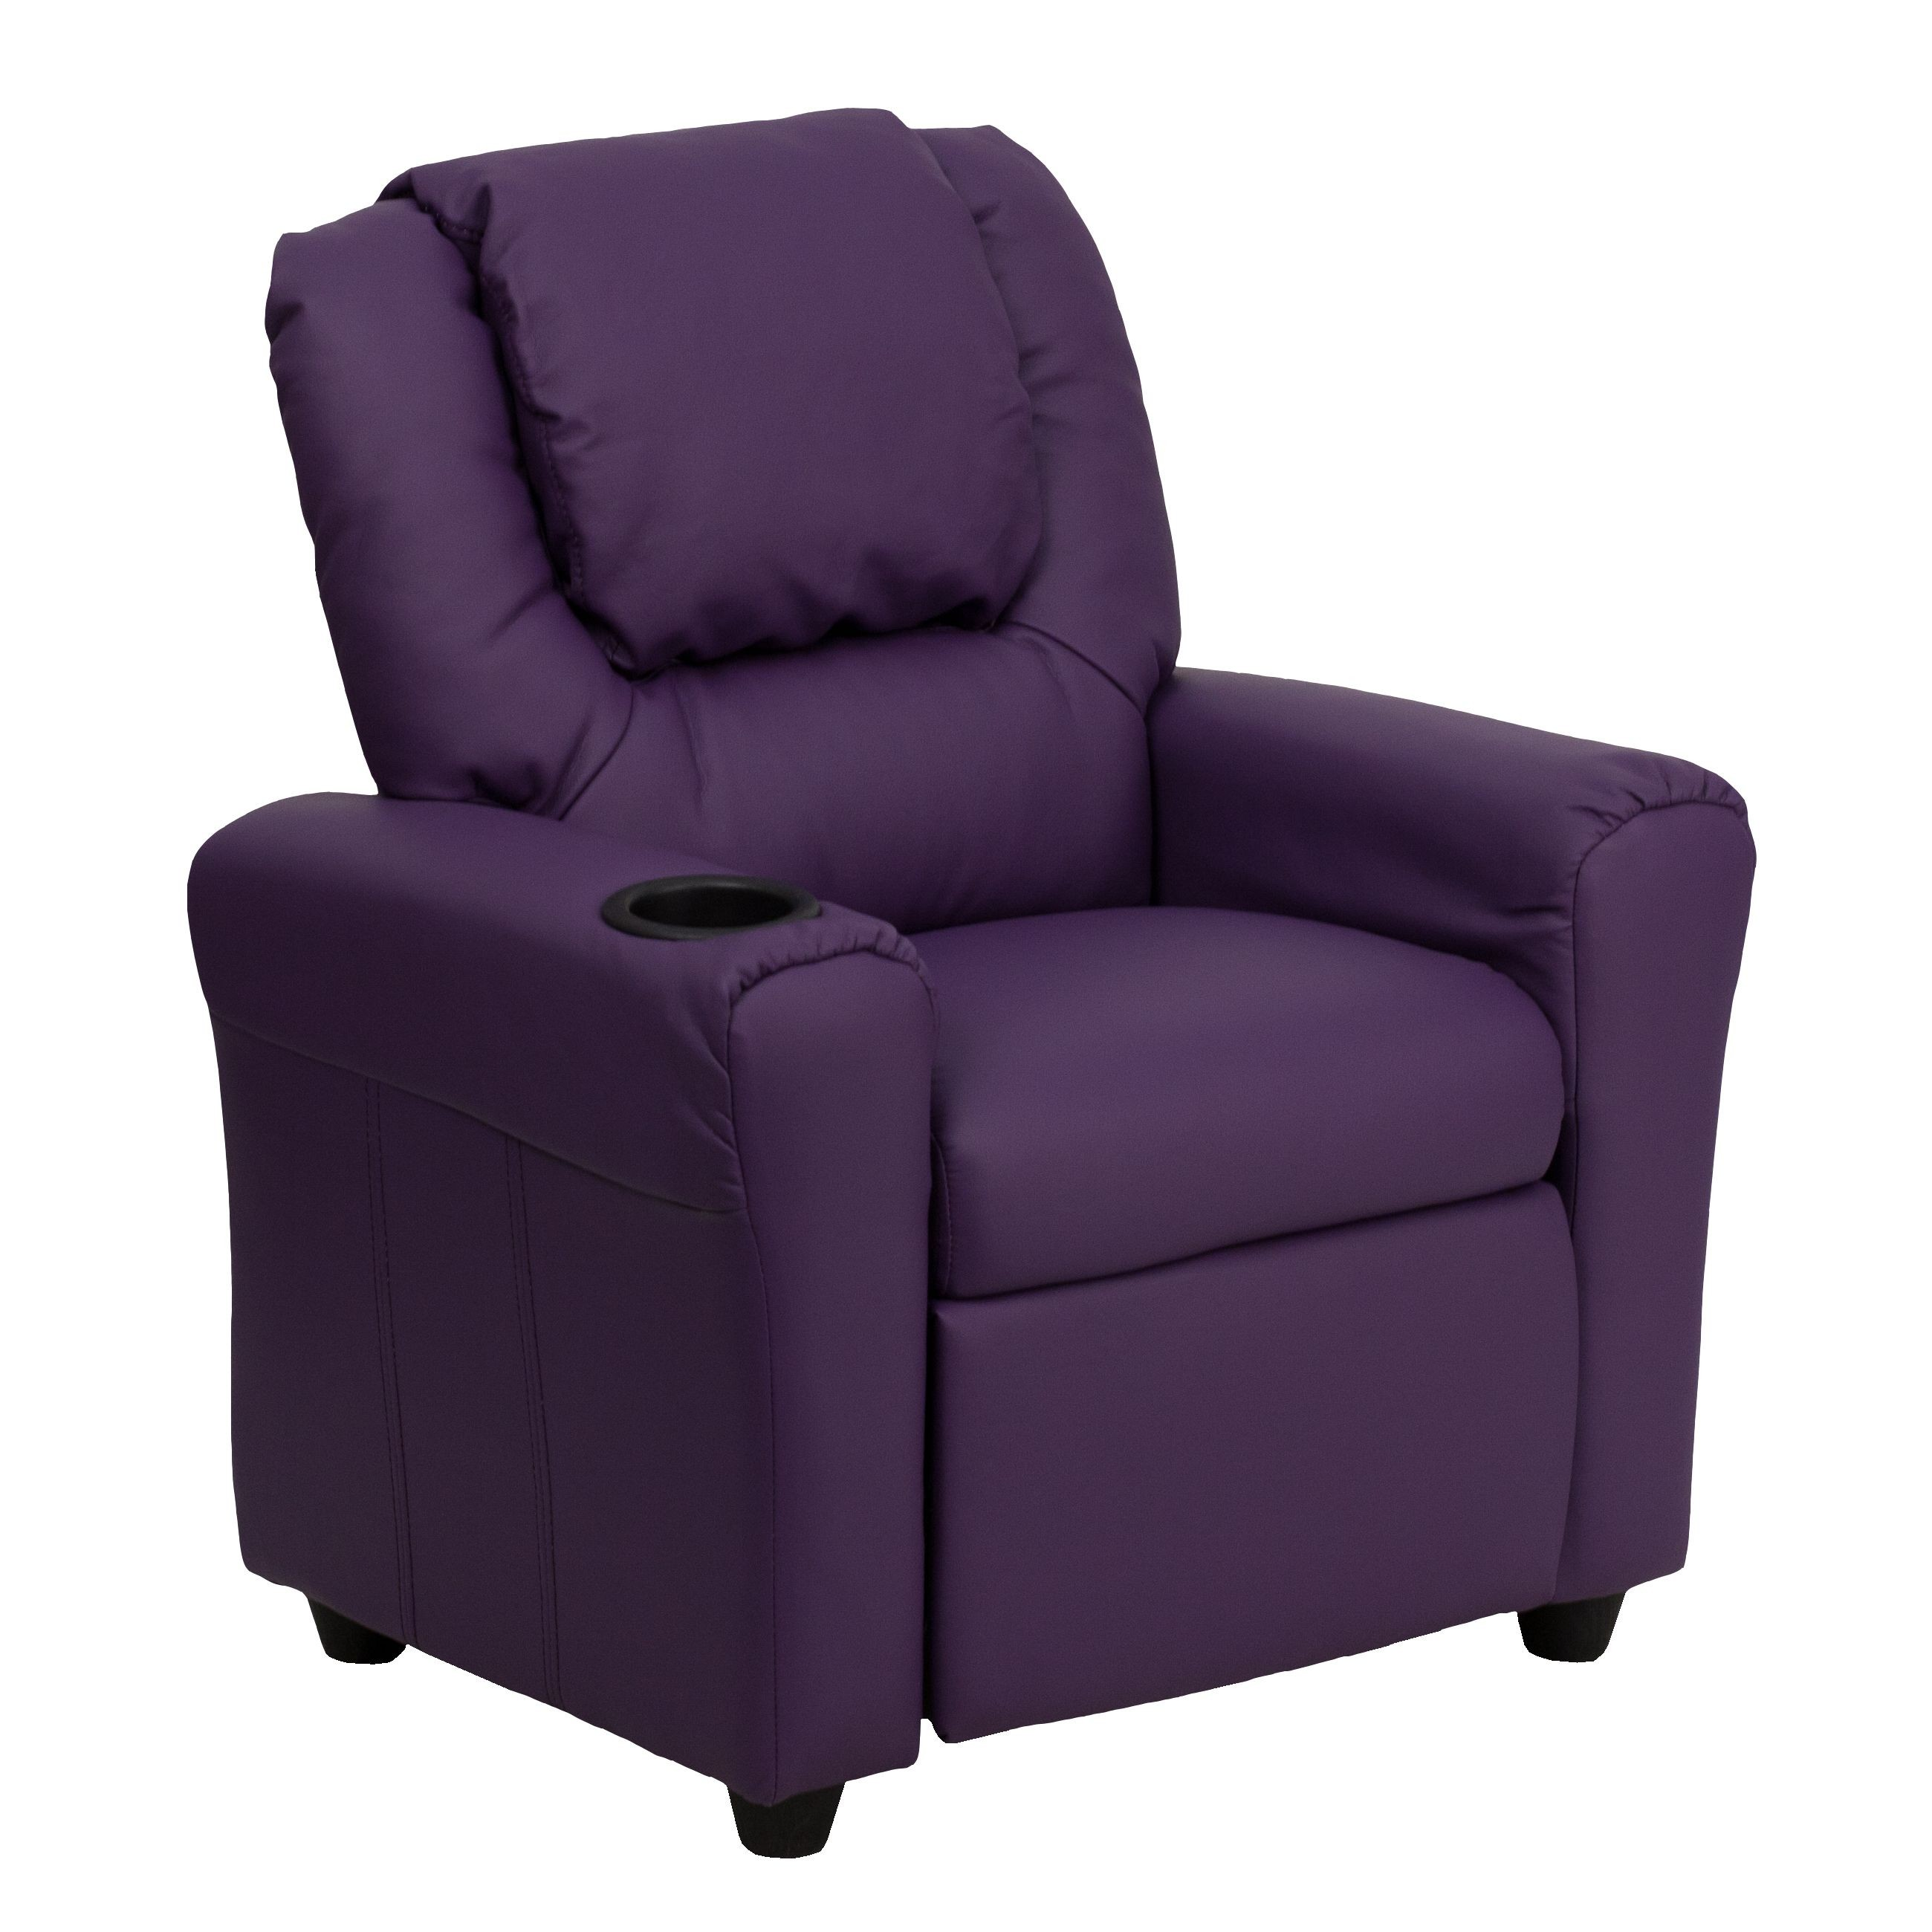 kid recliner chair covers for bed bugs flash furniture dg ult pur gg contemporary purple